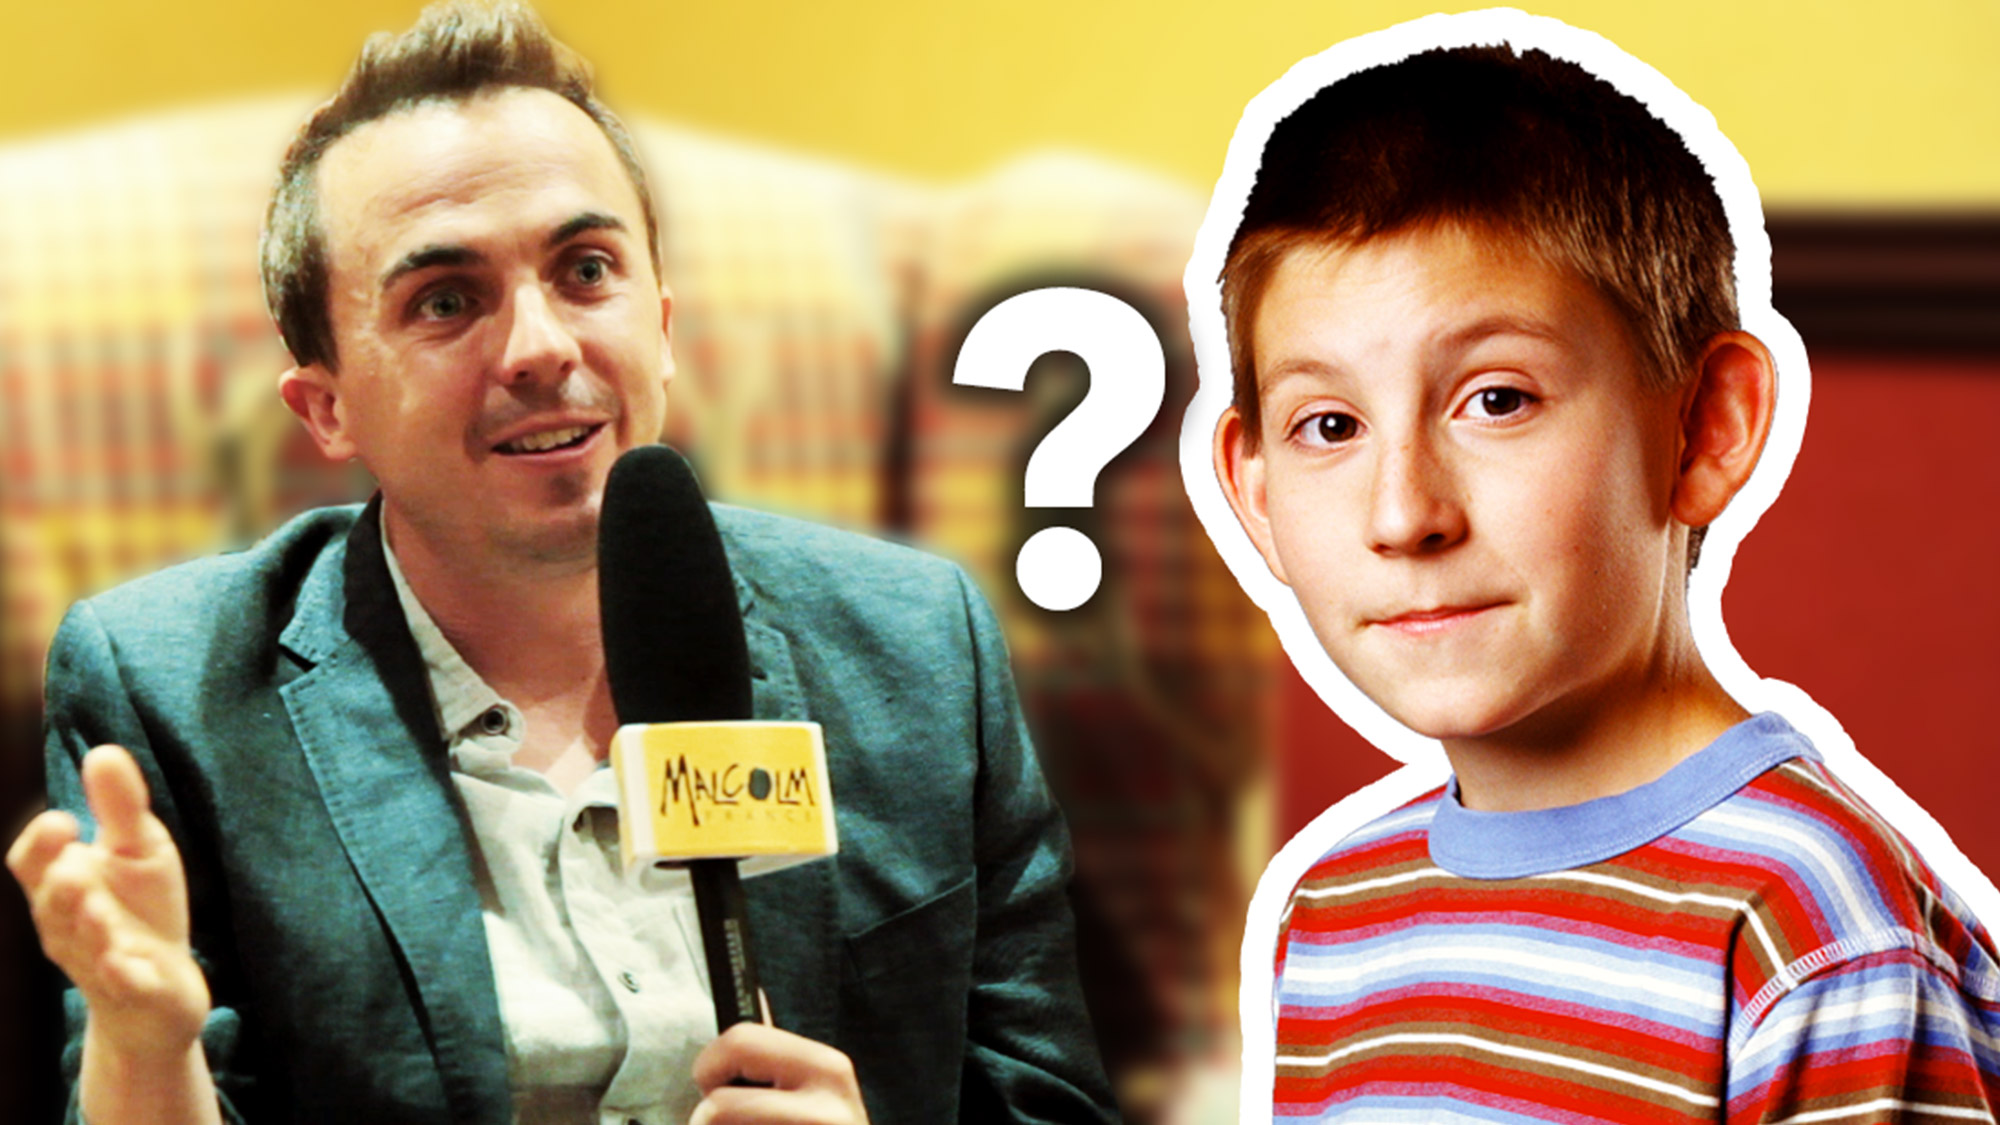 Que devient Dewey ? On a posé la question à Frankie Muniz